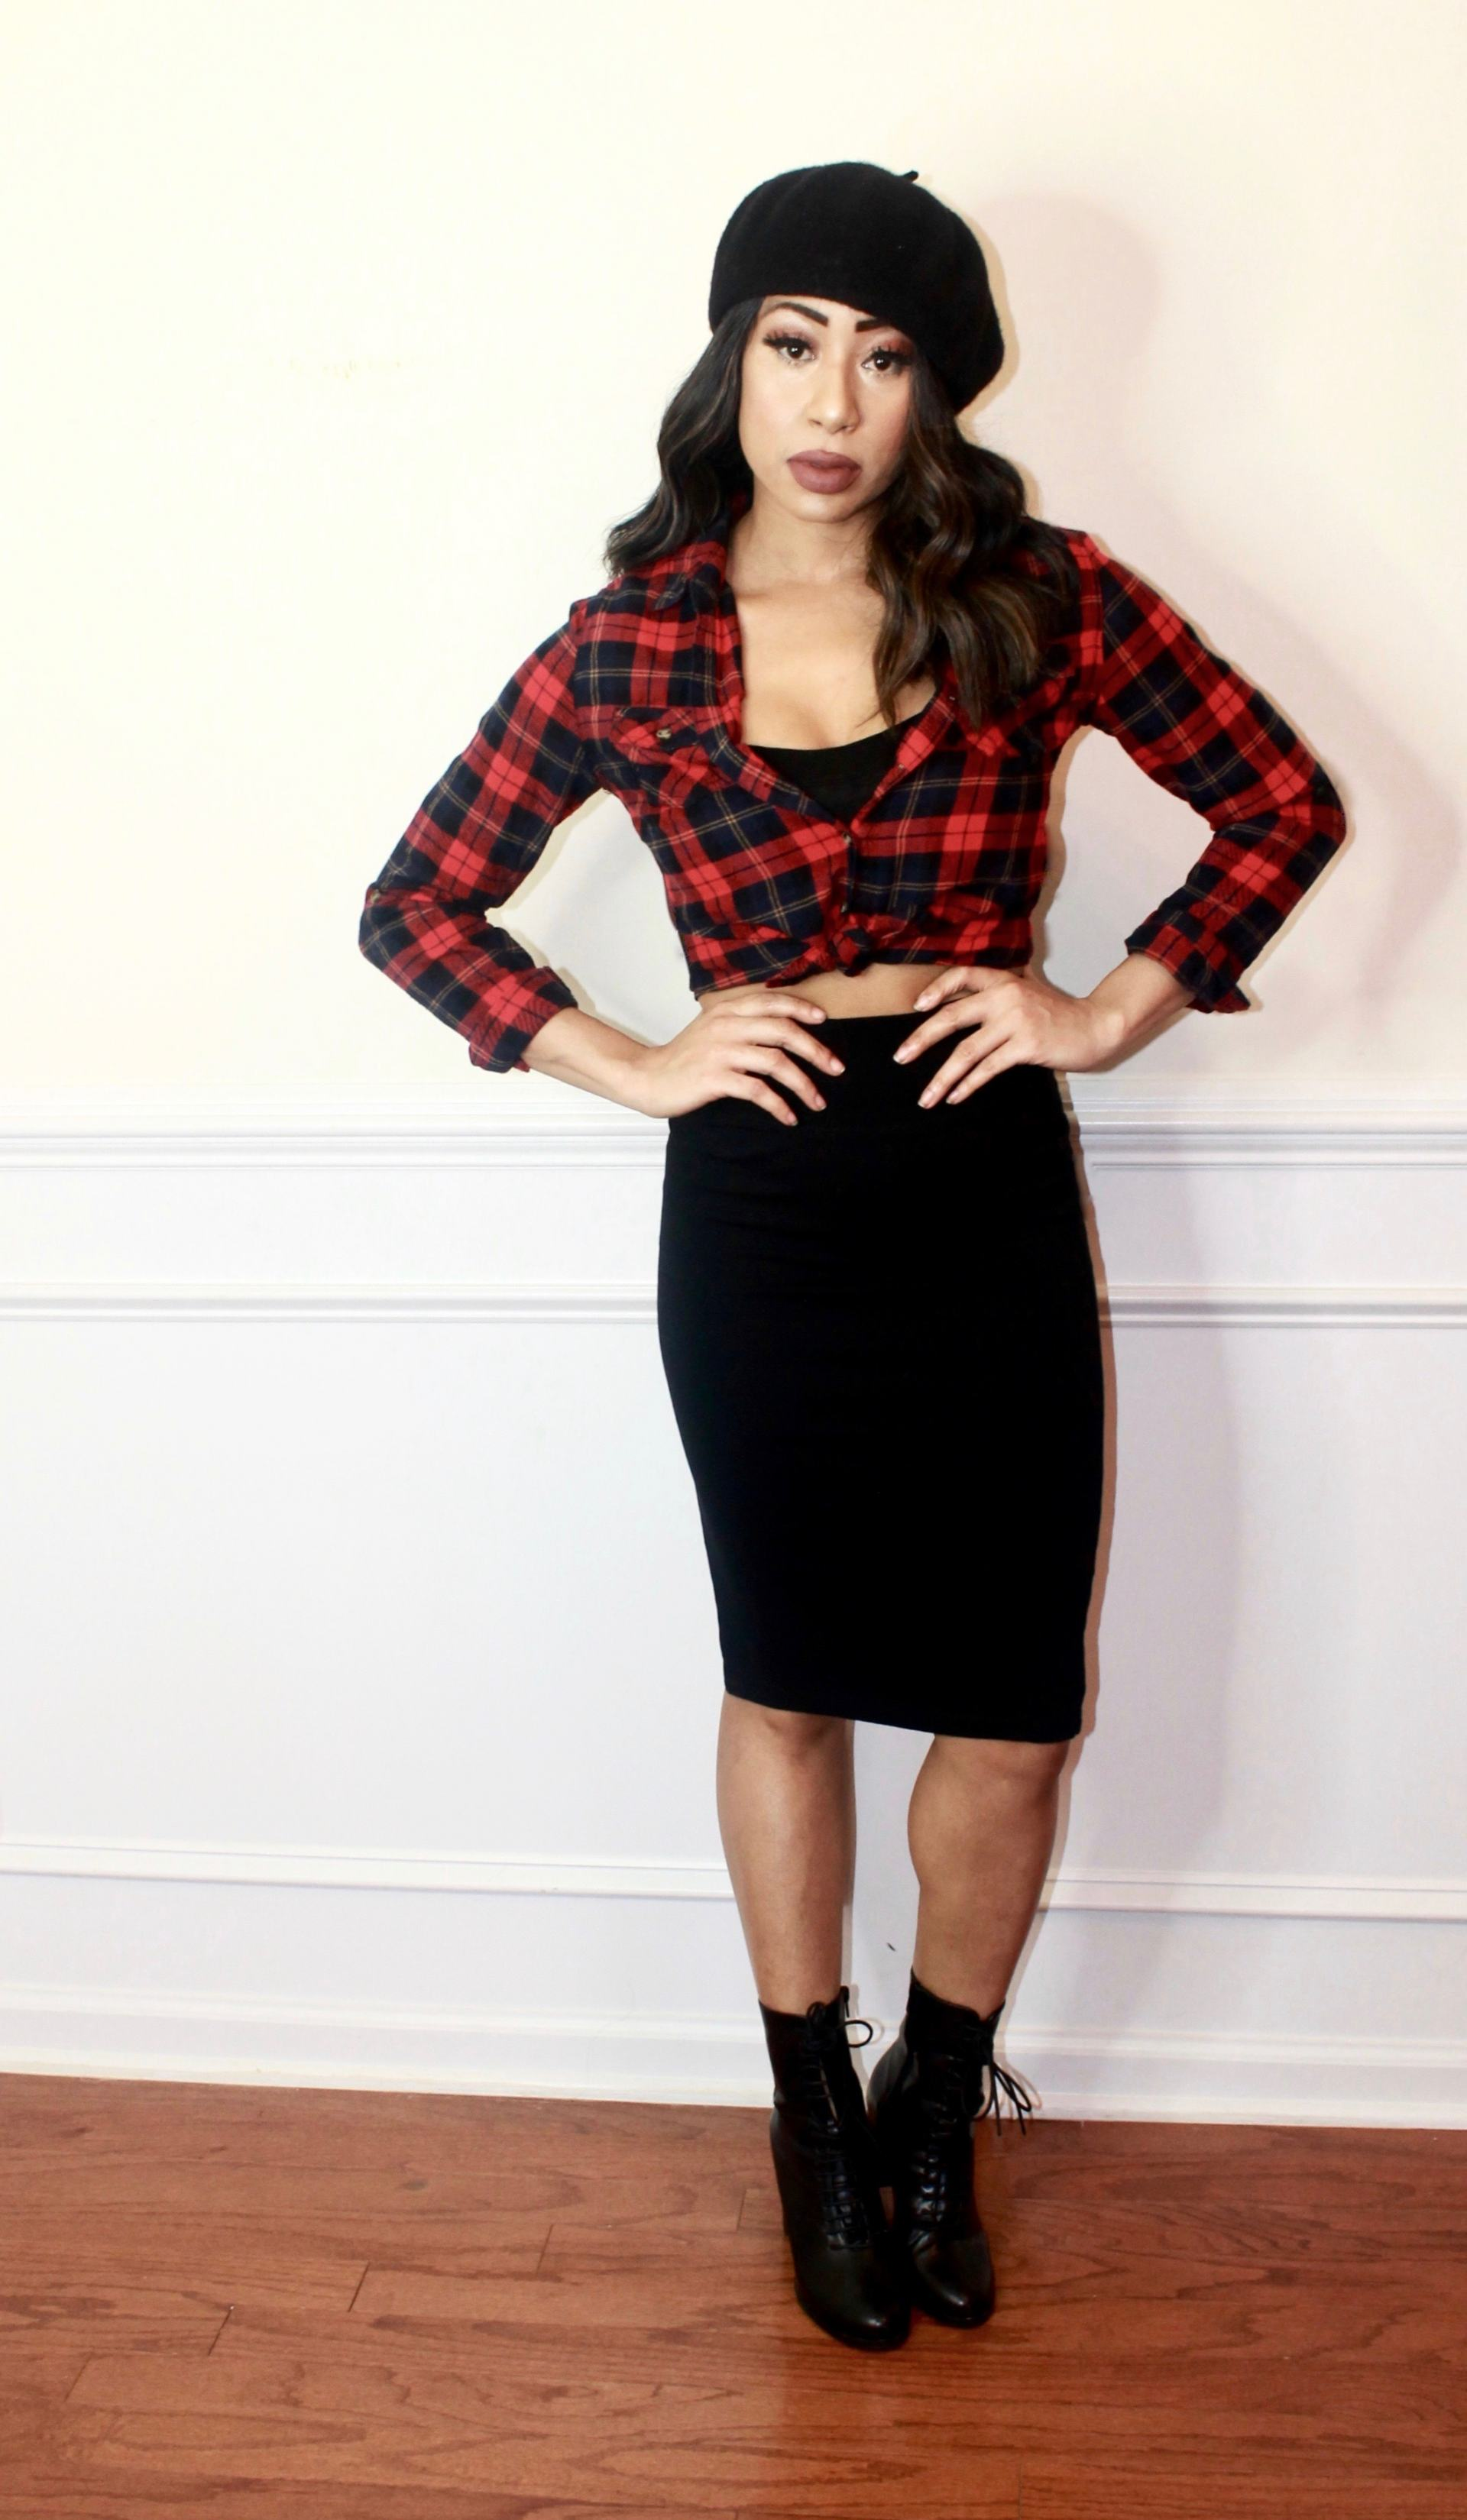 Three ways to Style a Plaid Shirt in Fall